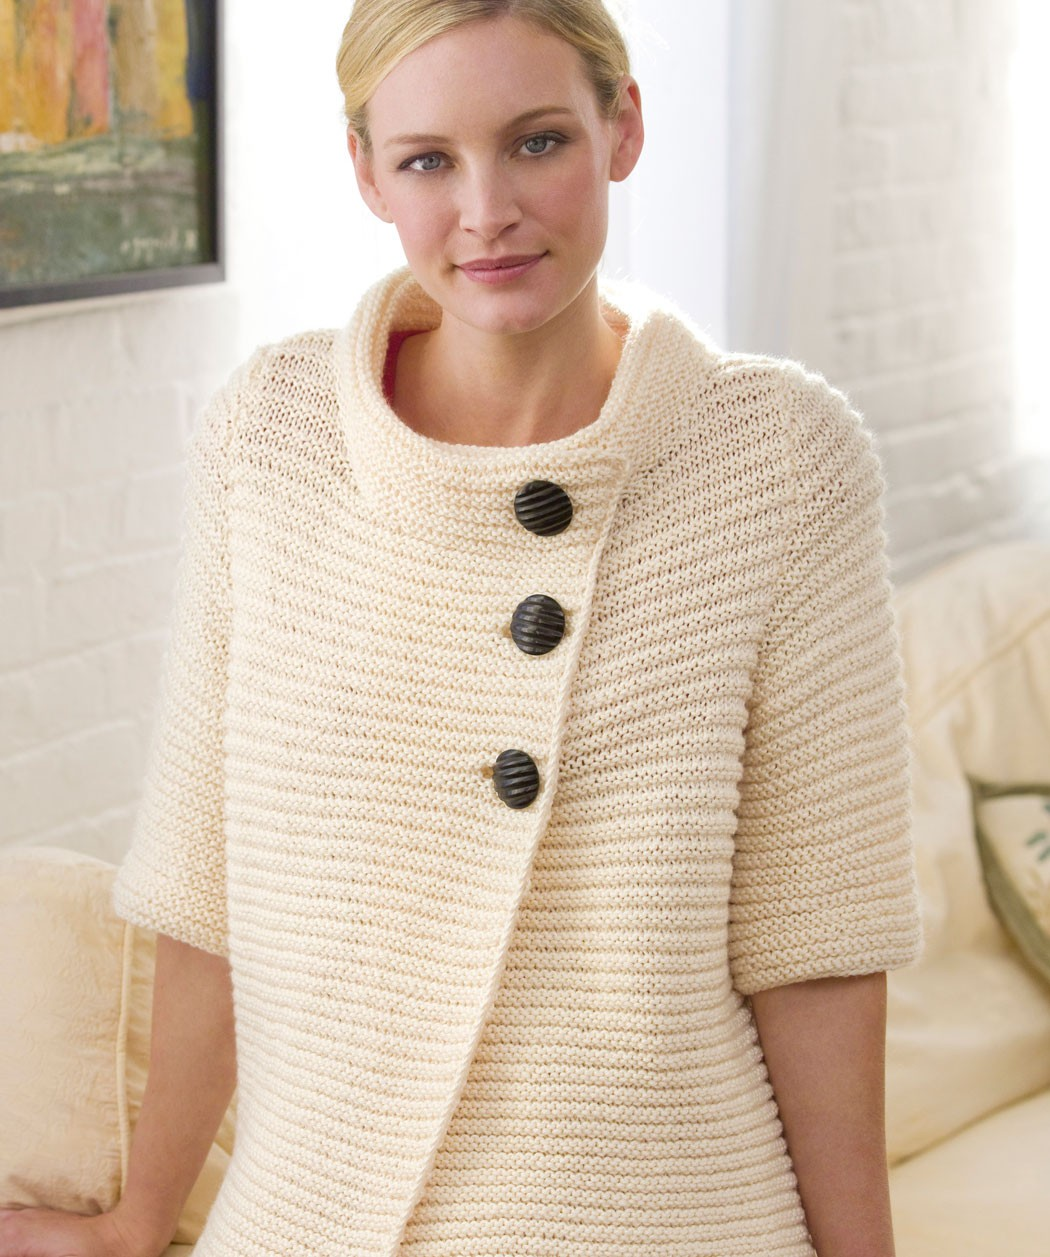 Sweater Knitting Patterns : Knitted Sweater Patterns for Women A Knitting Blog